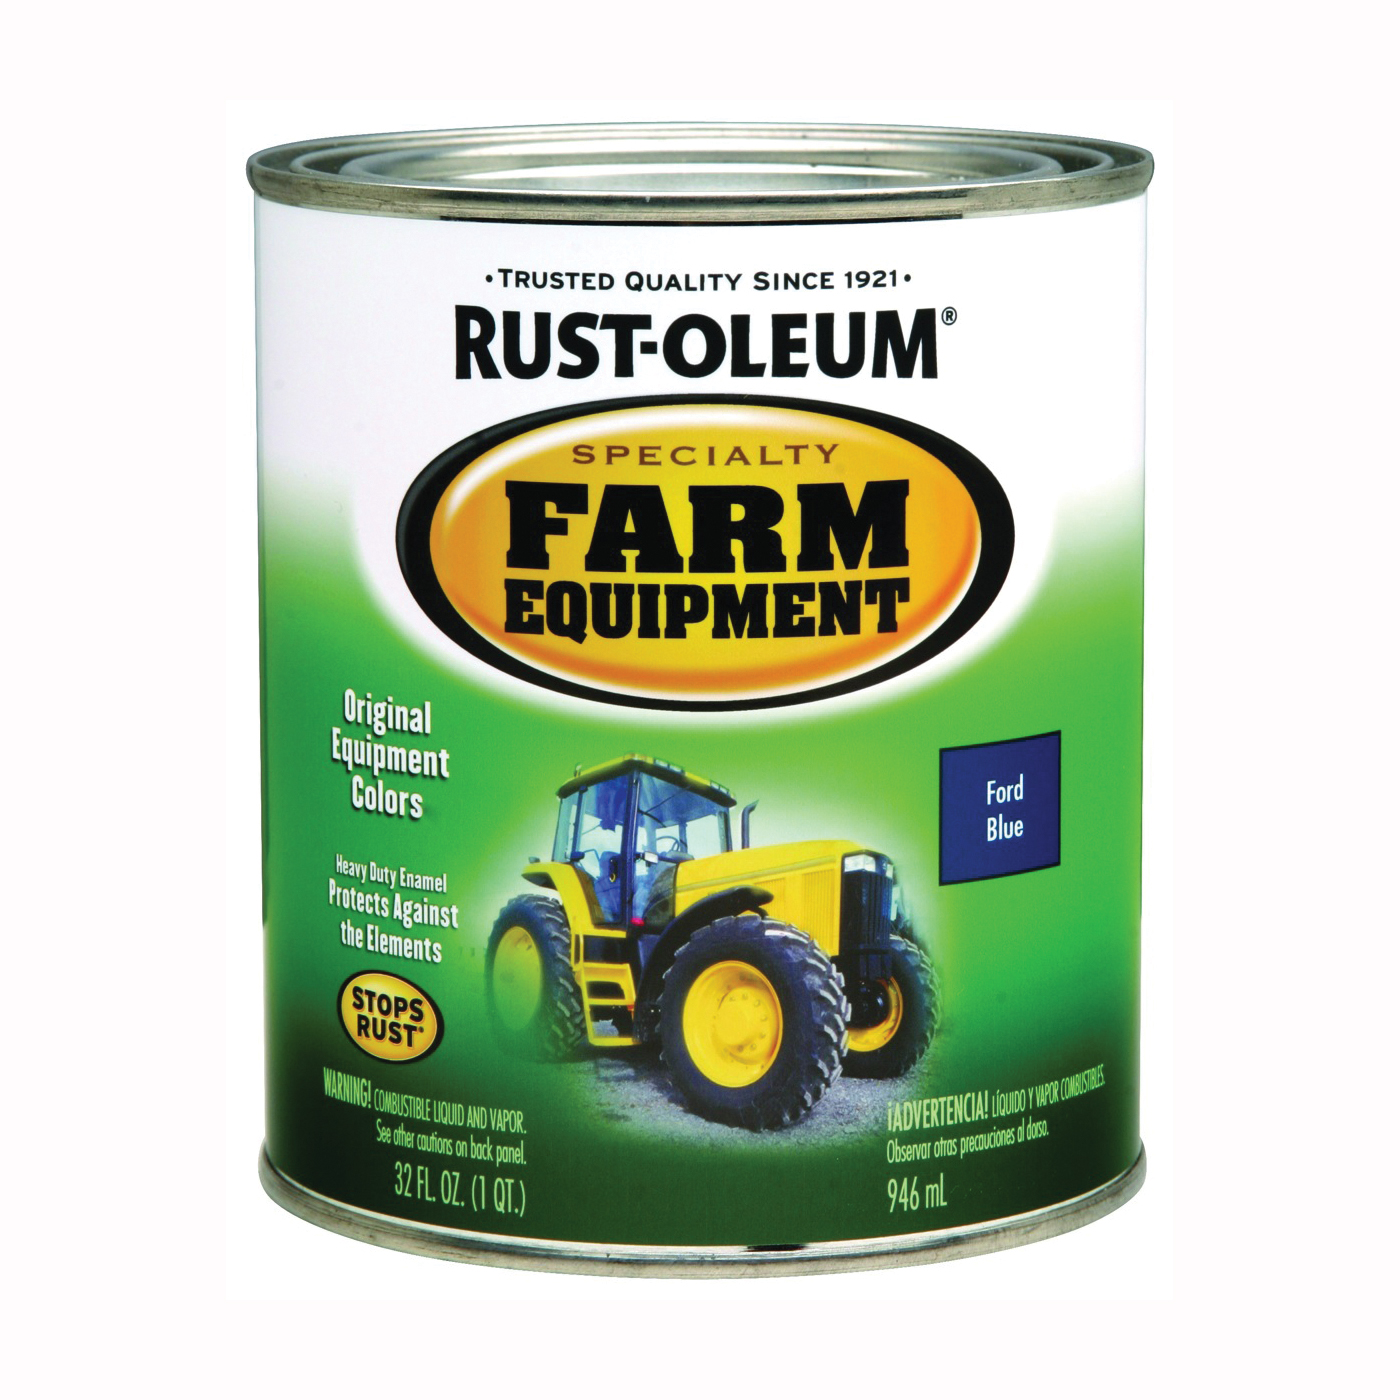 Picture of RUST-OLEUM 7424502 Farm Equipment Brush-On Enamel Paint, Ford Blue, 1 qt, Can